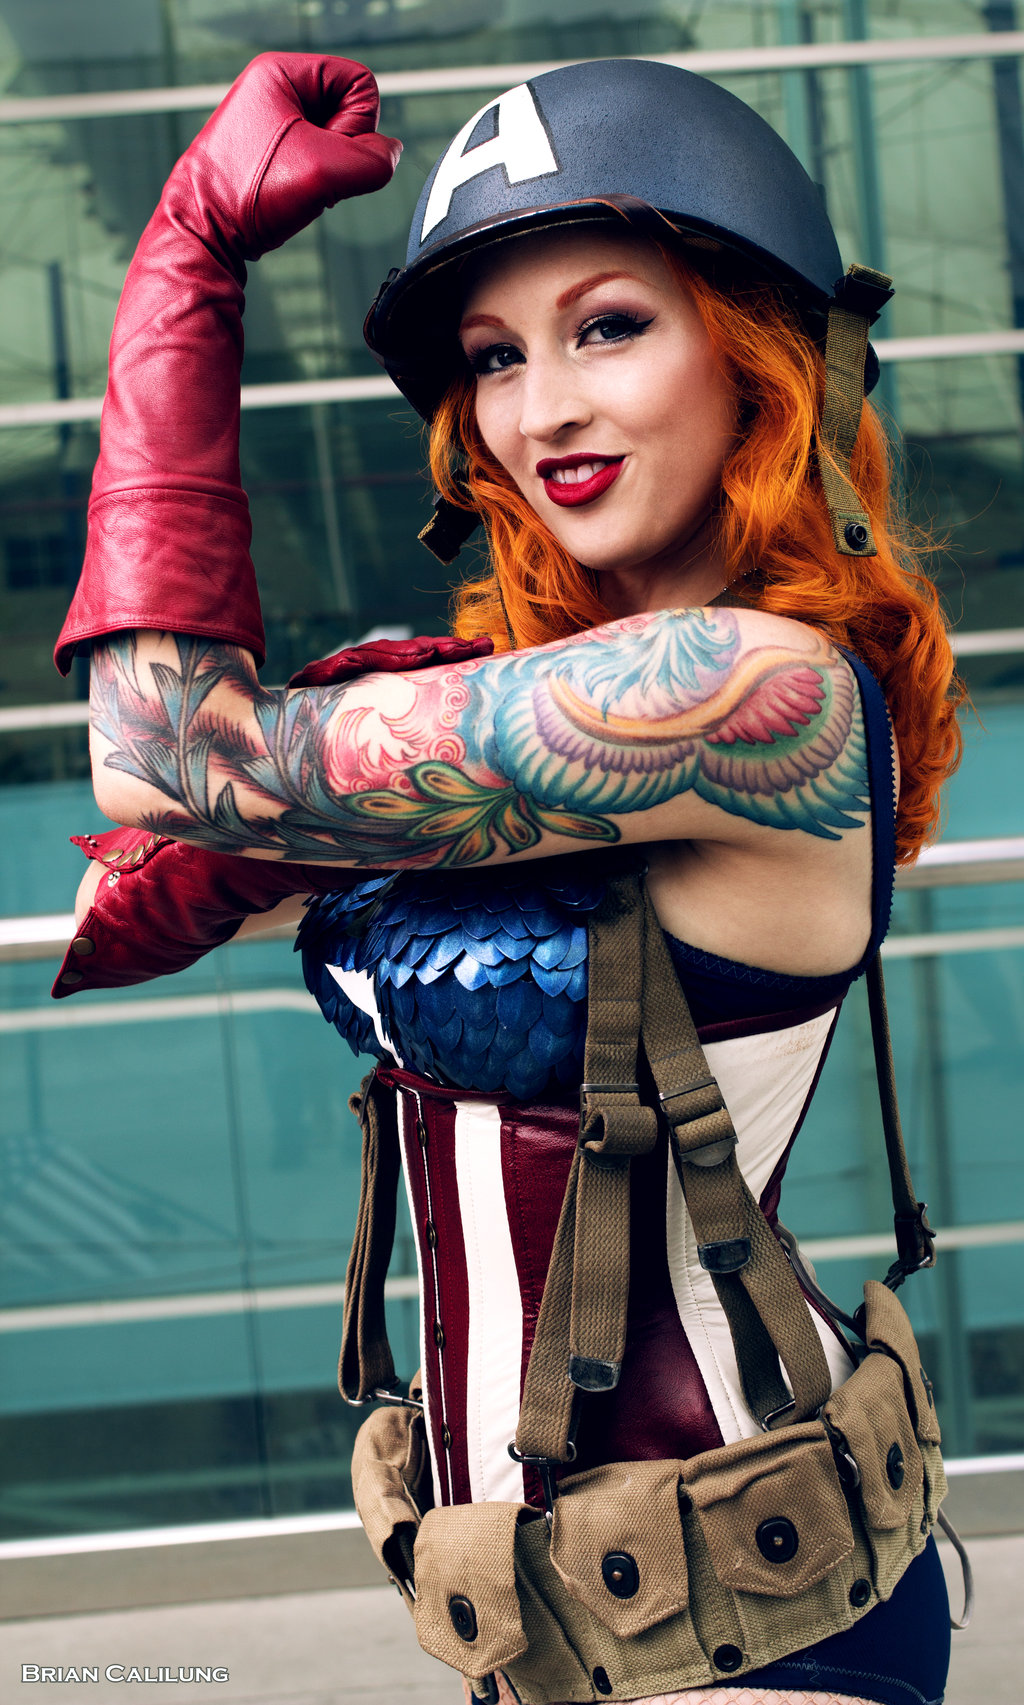 Stephanie Castro  is Captain America | Photo by  briancalilung